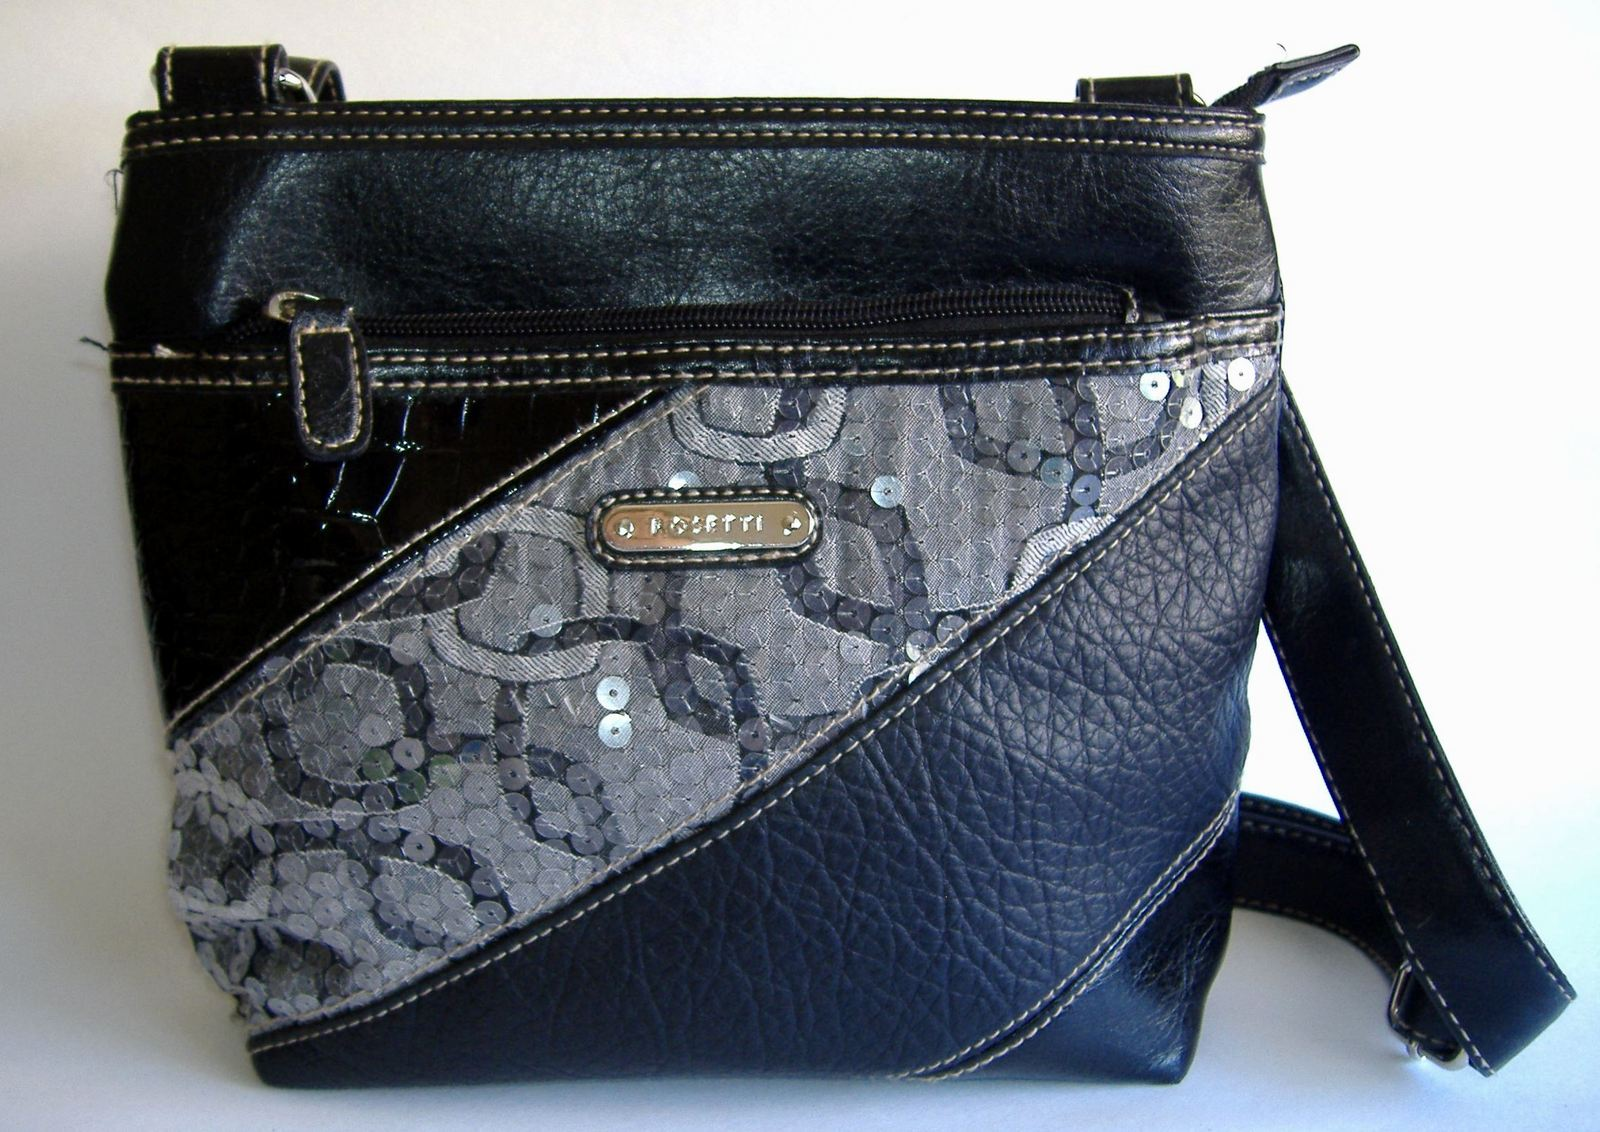 Black Rosetti Shoulder Bag Sequin Faux Leather Purse Tote Zipper Pockets Handbag 20 00